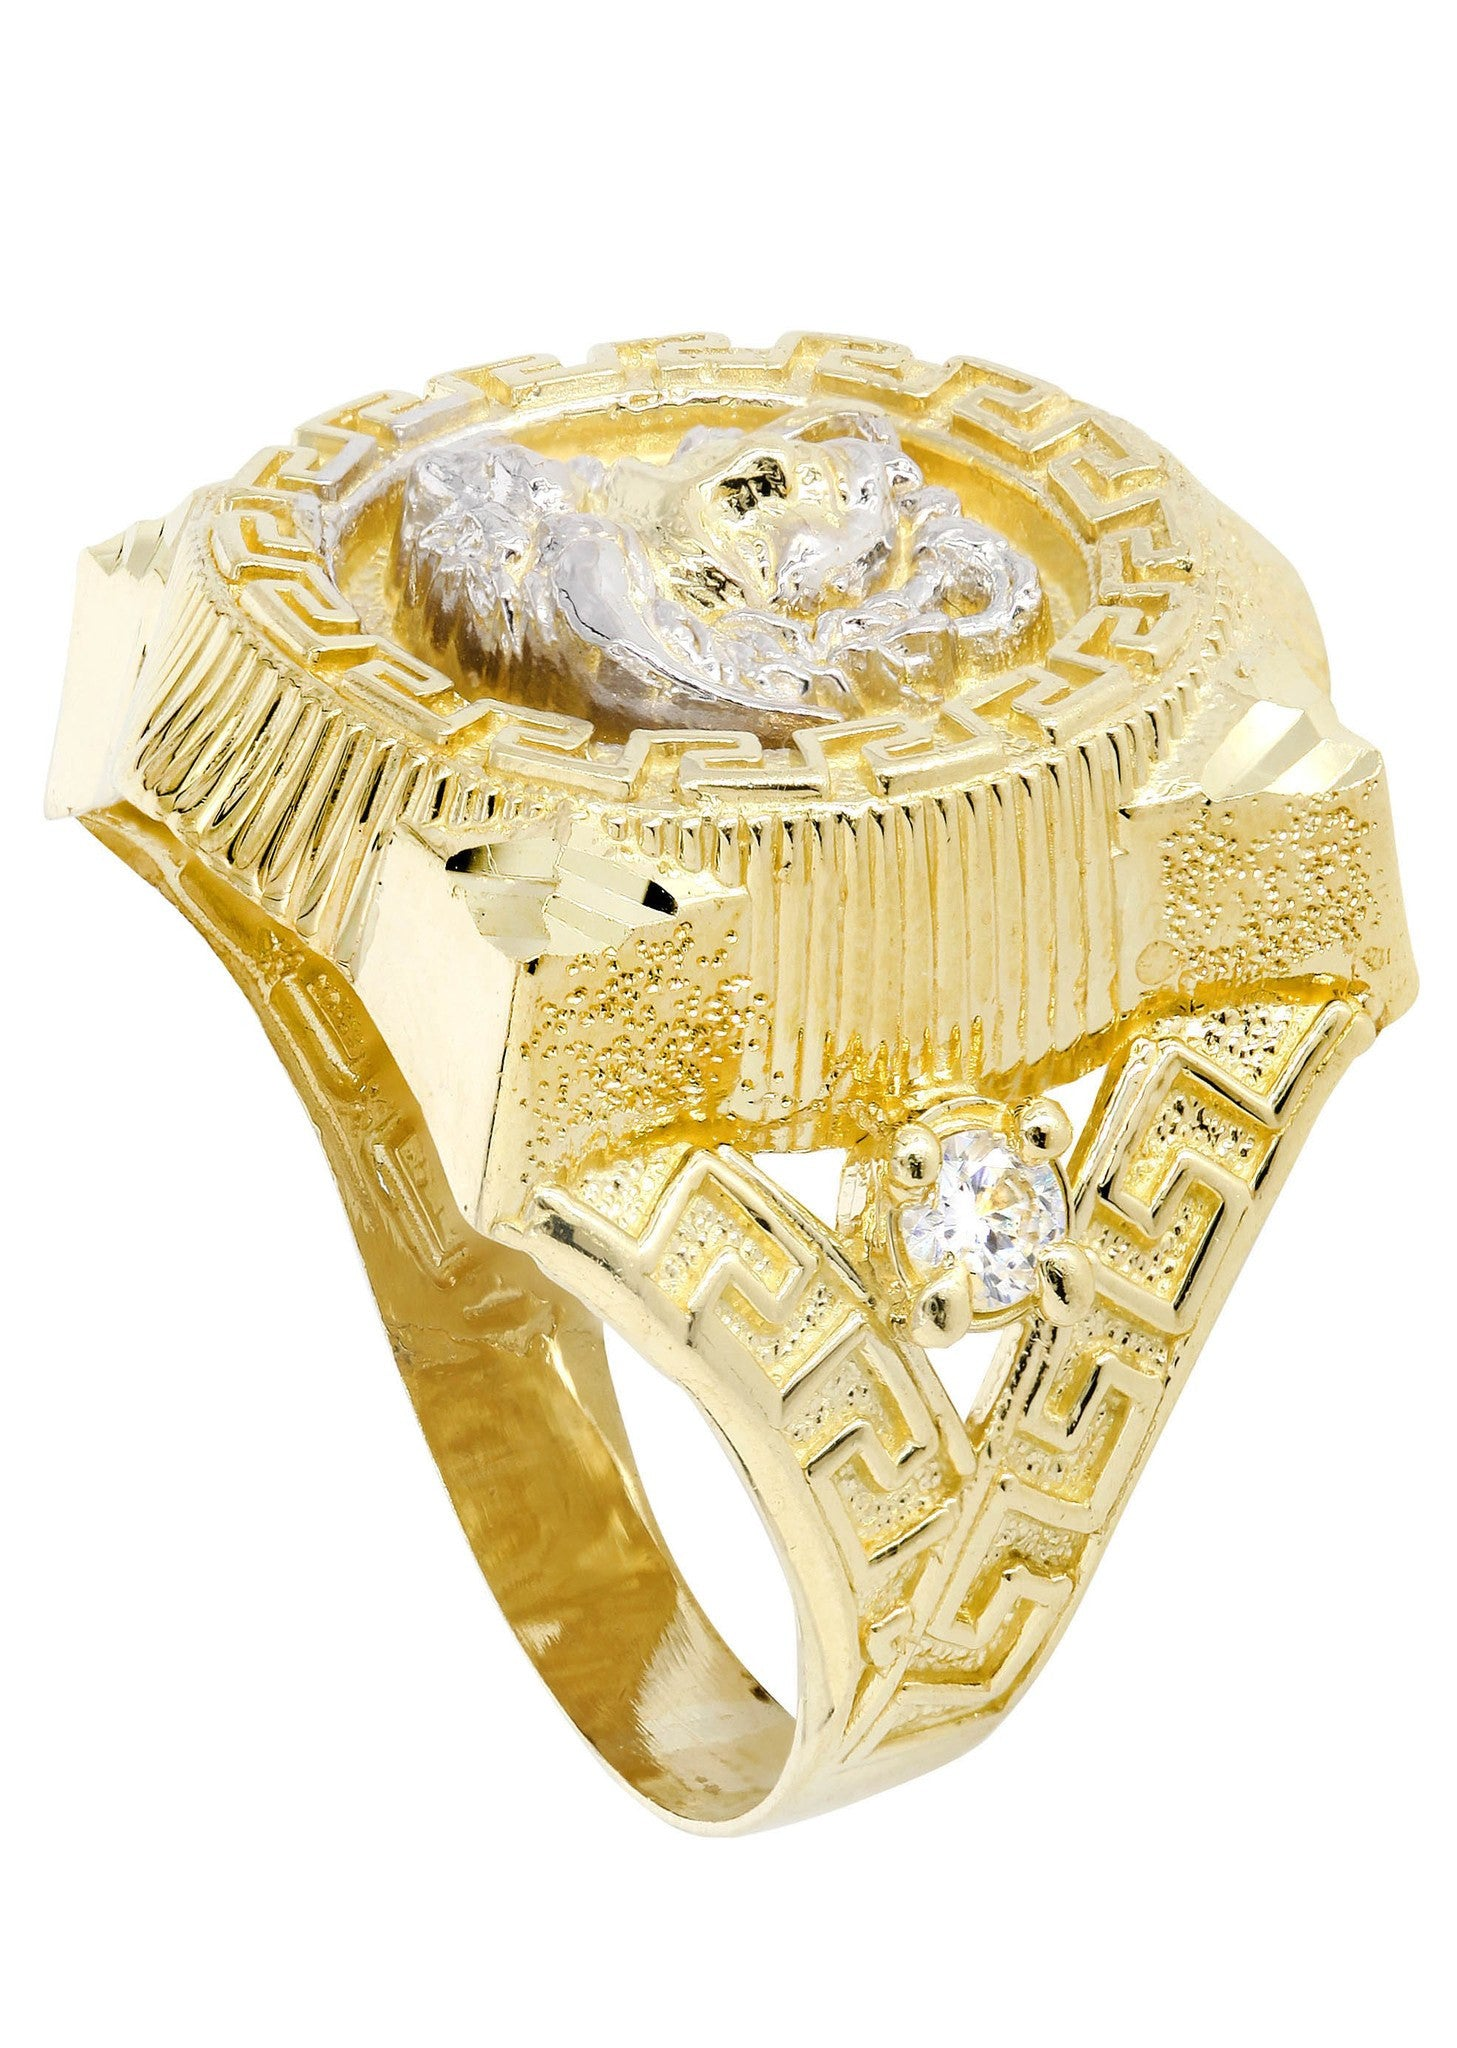 10k yellow gold versace style mens ring 8 grams frostnyc. Black Bedroom Furniture Sets. Home Design Ideas